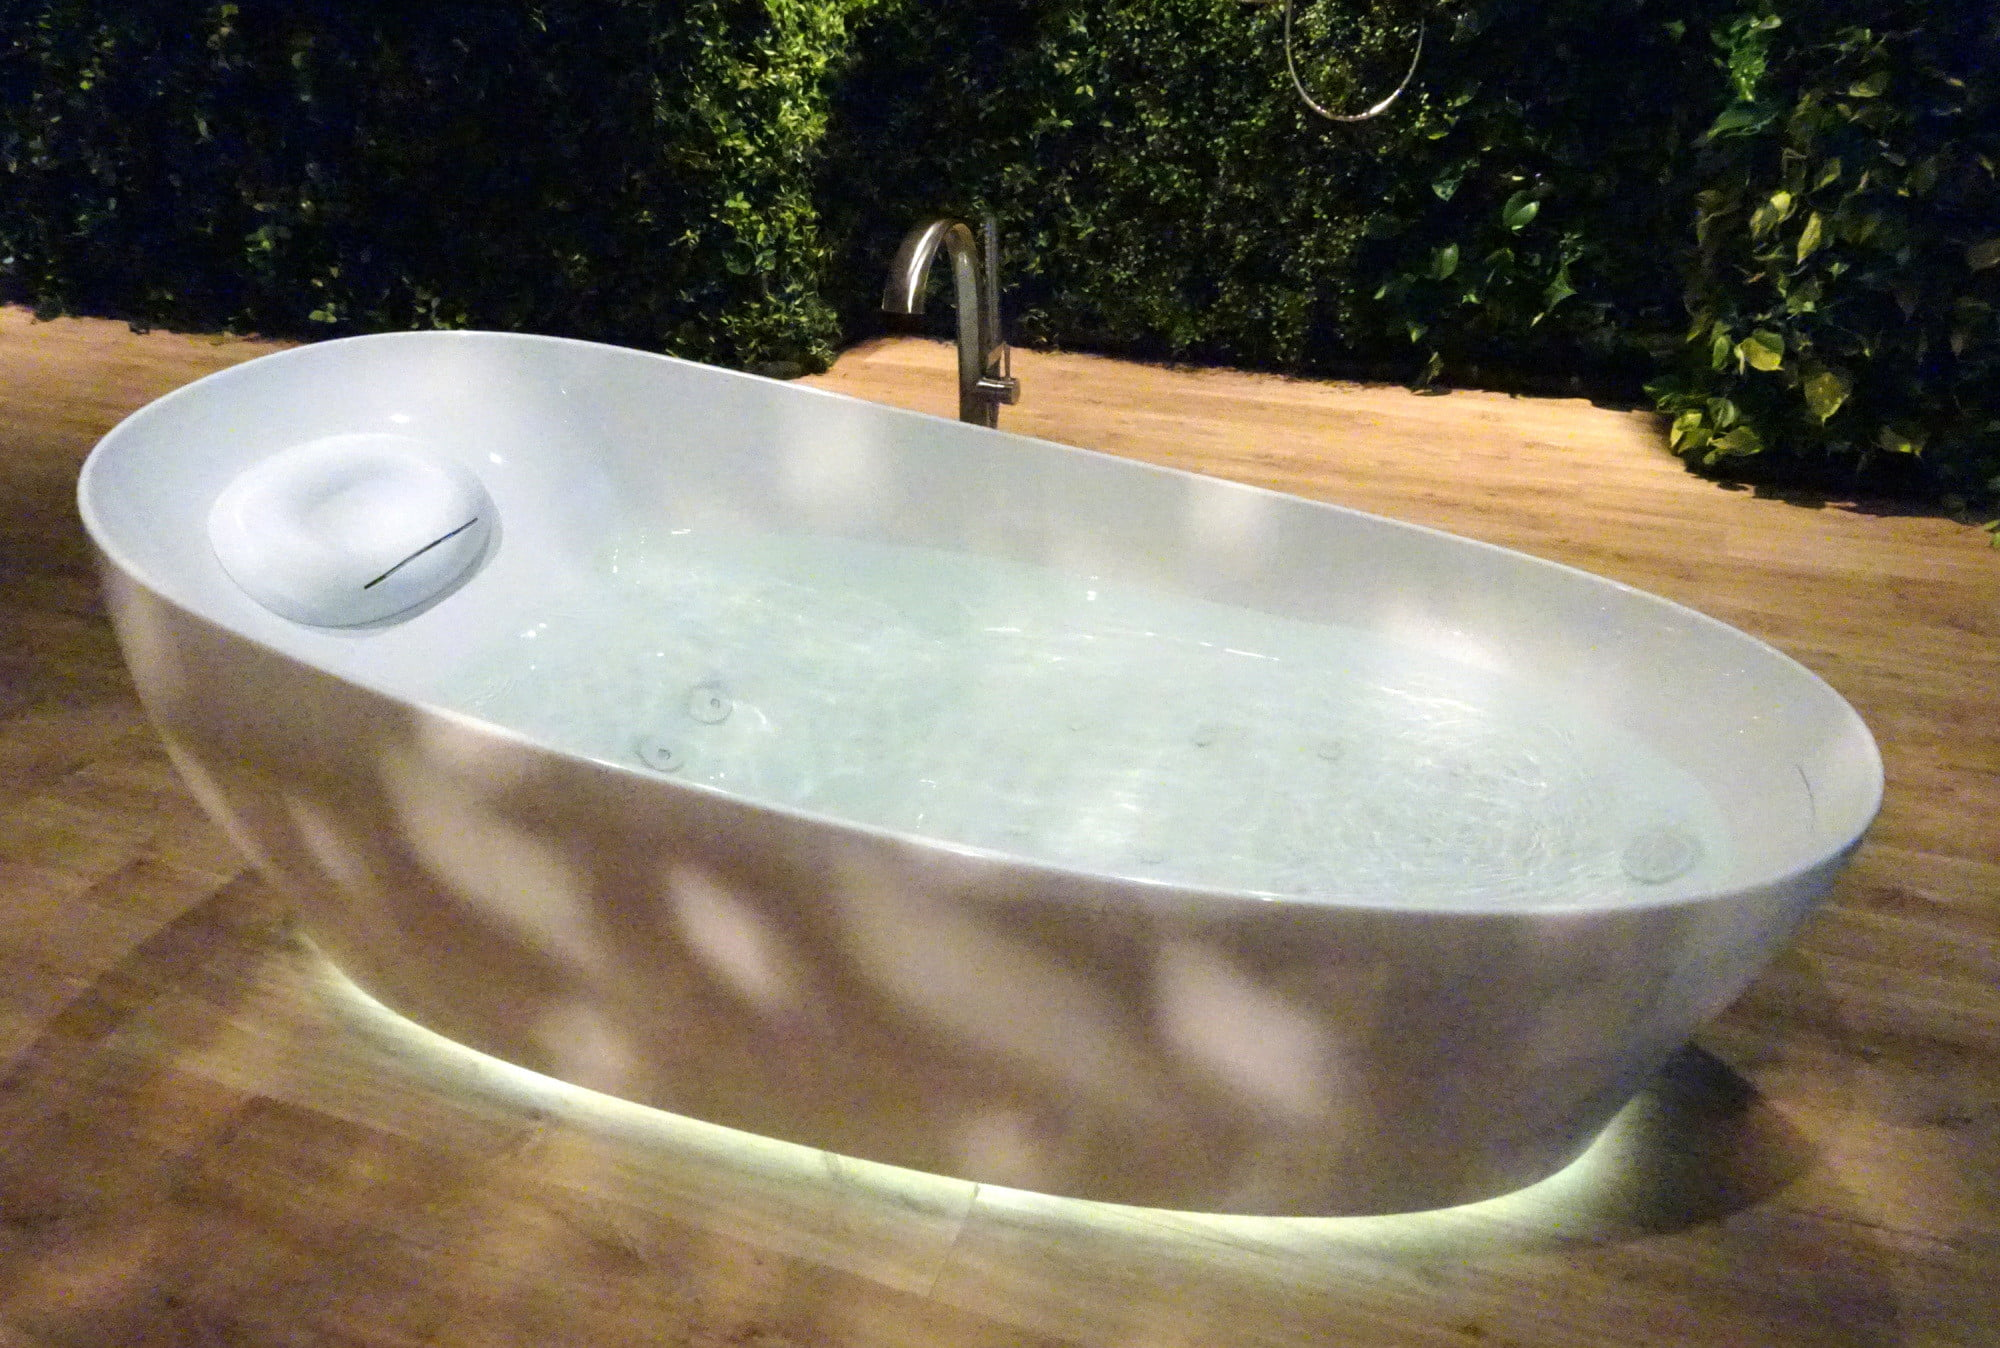 Toto Introduces its New Flotation Tub, the Ultimate in Bath-Time ...